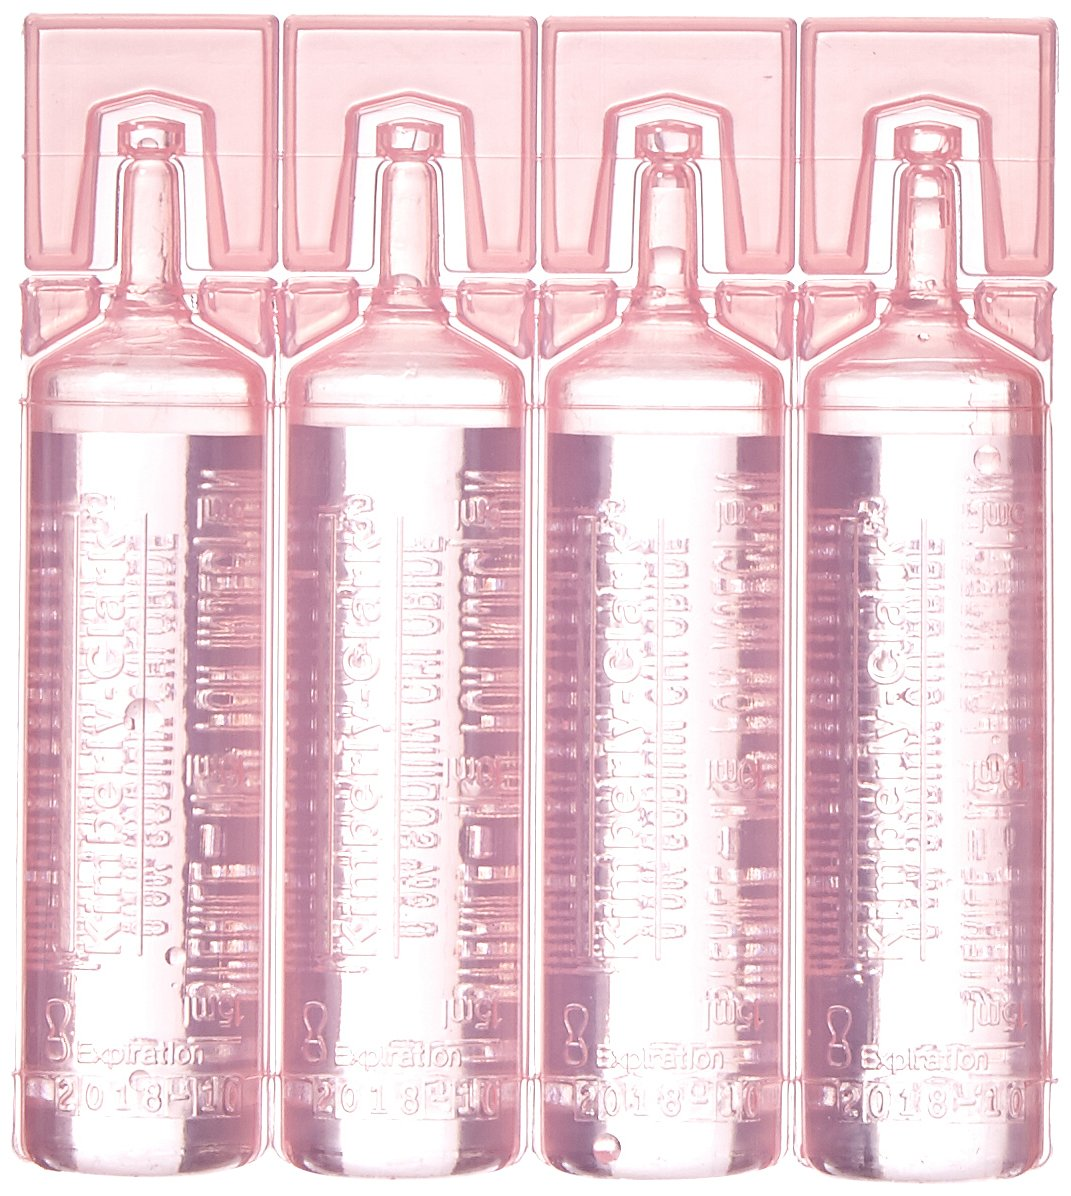 Halyard Health 116 Saline Vials for Closed Suction Catheters, Non-Sterile, Nonpyrogenic, Pink (Pack of 6)